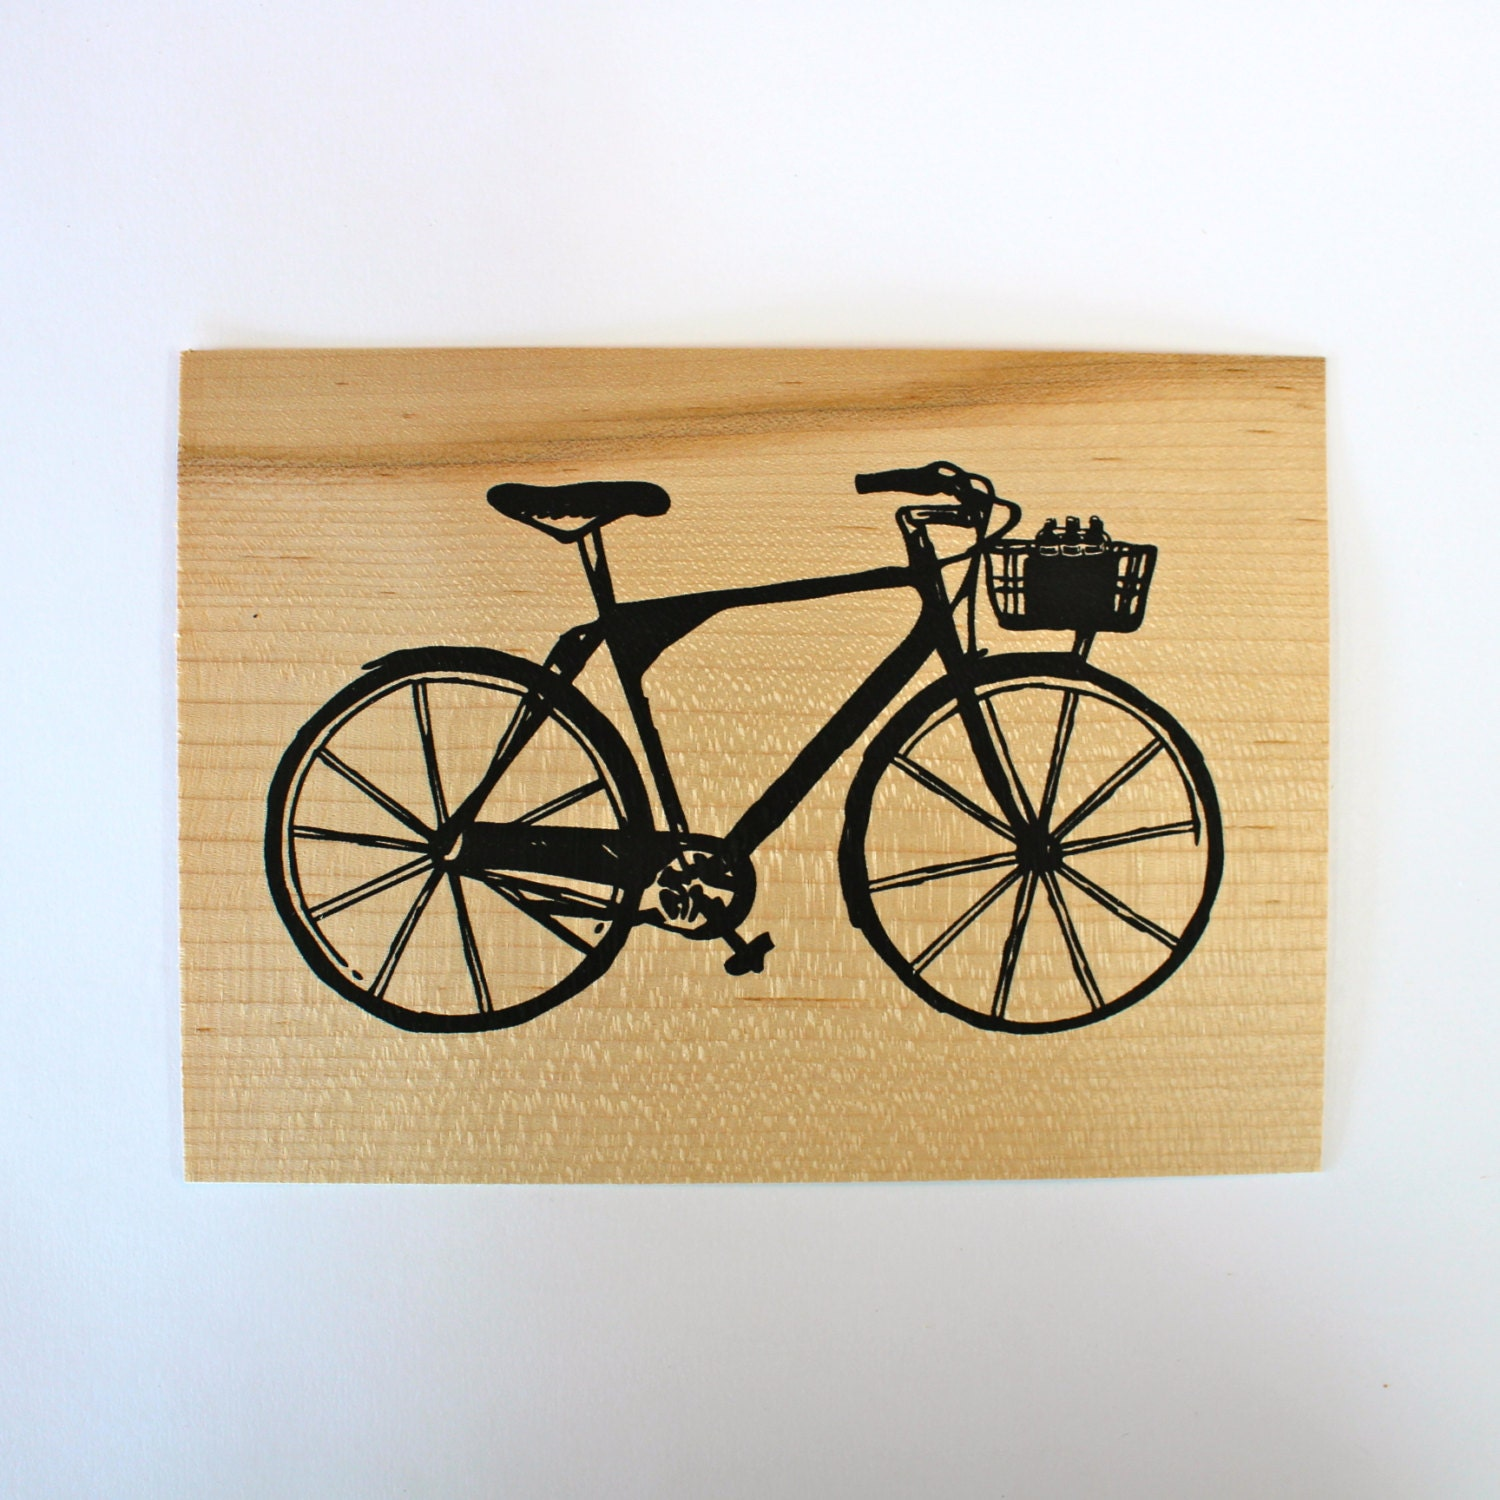 bike screen print on wood veneer v lo s rigraphie sur placage de bois from unikprintshop. Black Bedroom Furniture Sets. Home Design Ideas